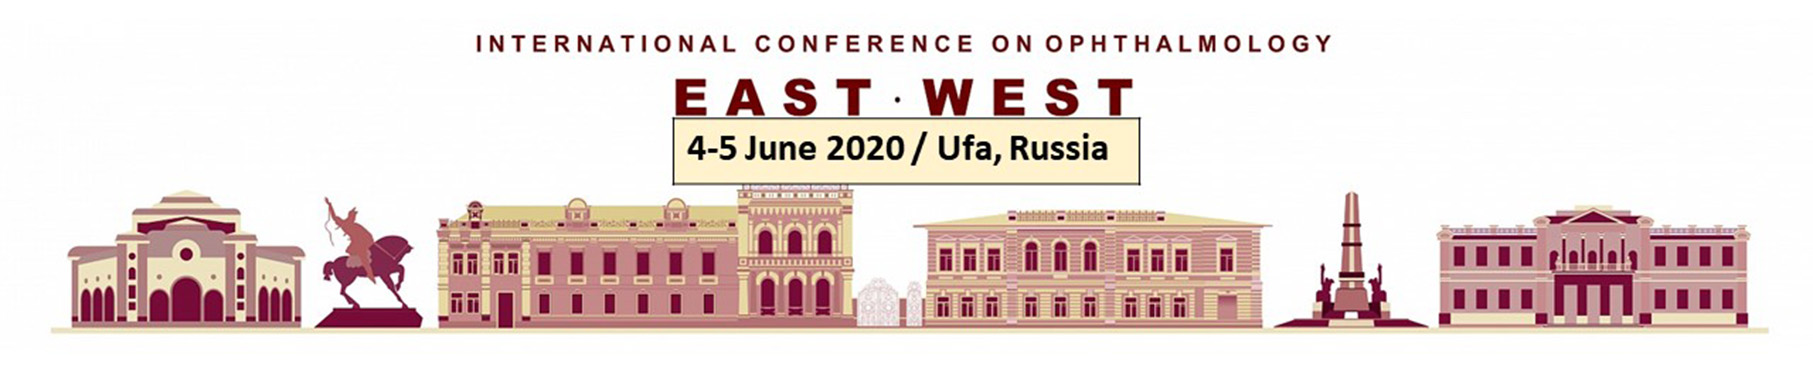 east-west2020